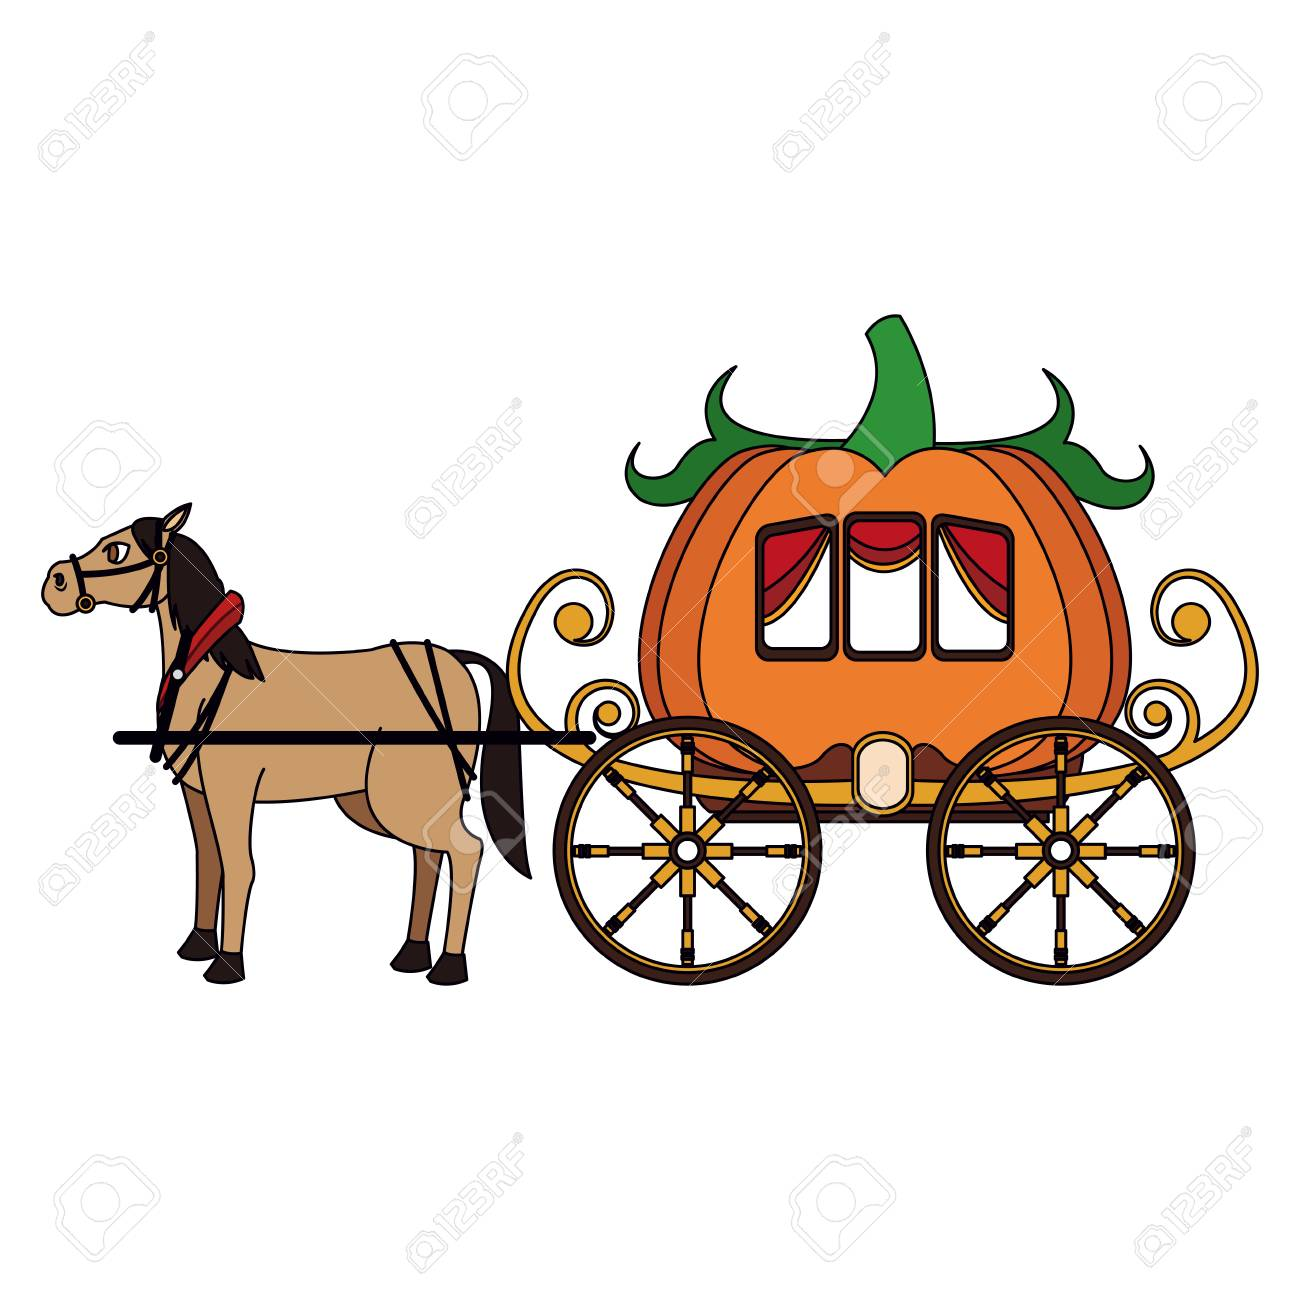 Pumpkin Carriage With Horse Cartoon Icon Vector Illustration Royalty Free Cliparts Vectors And Stock Illustration Image 95561125